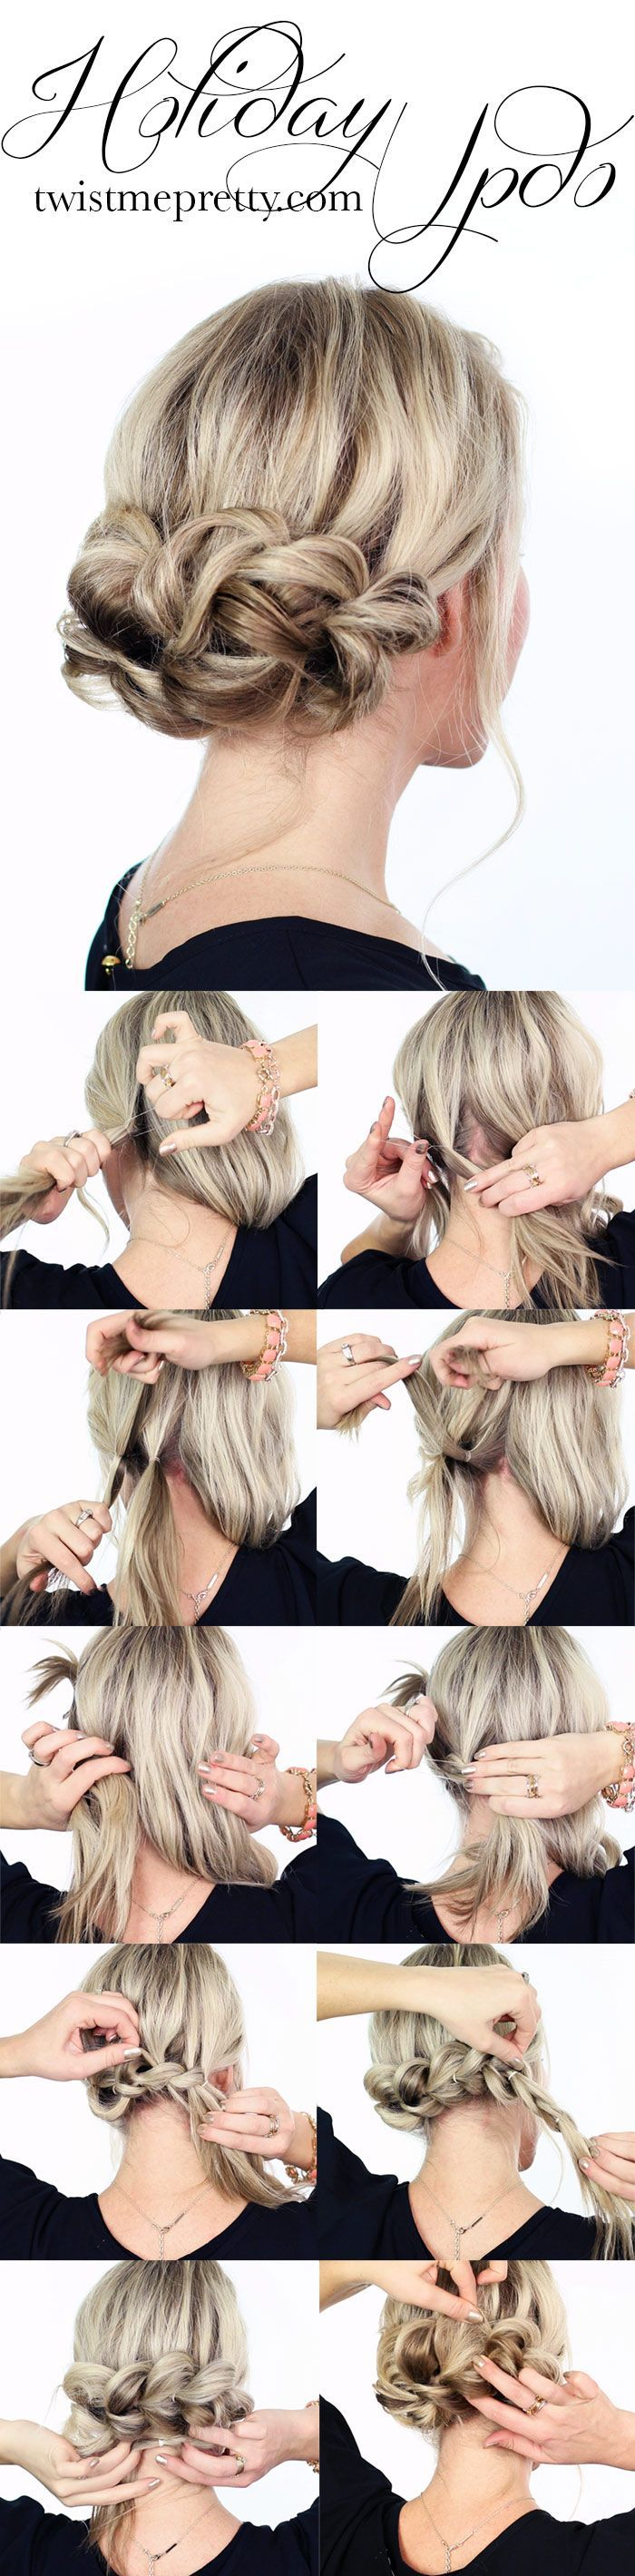 Easy Gorgeous Updo Hairstyle Tutorial, Perfect for the Holiday Season